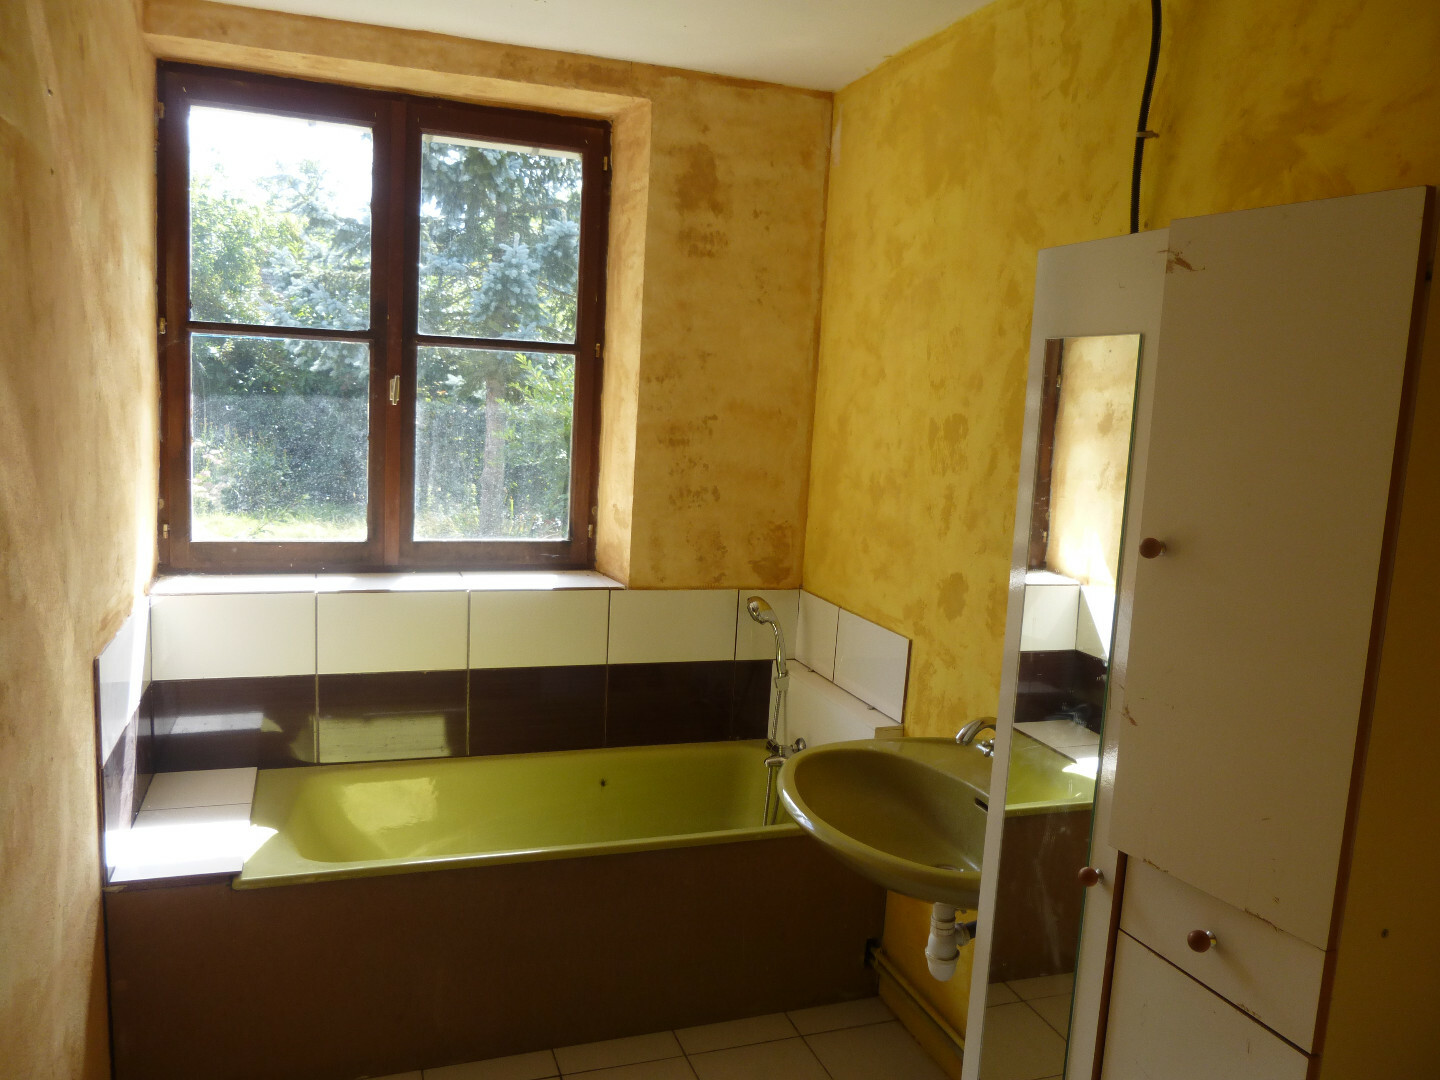 Sale House, 4 Rooms, 2 Bedrooms, Area 81m²